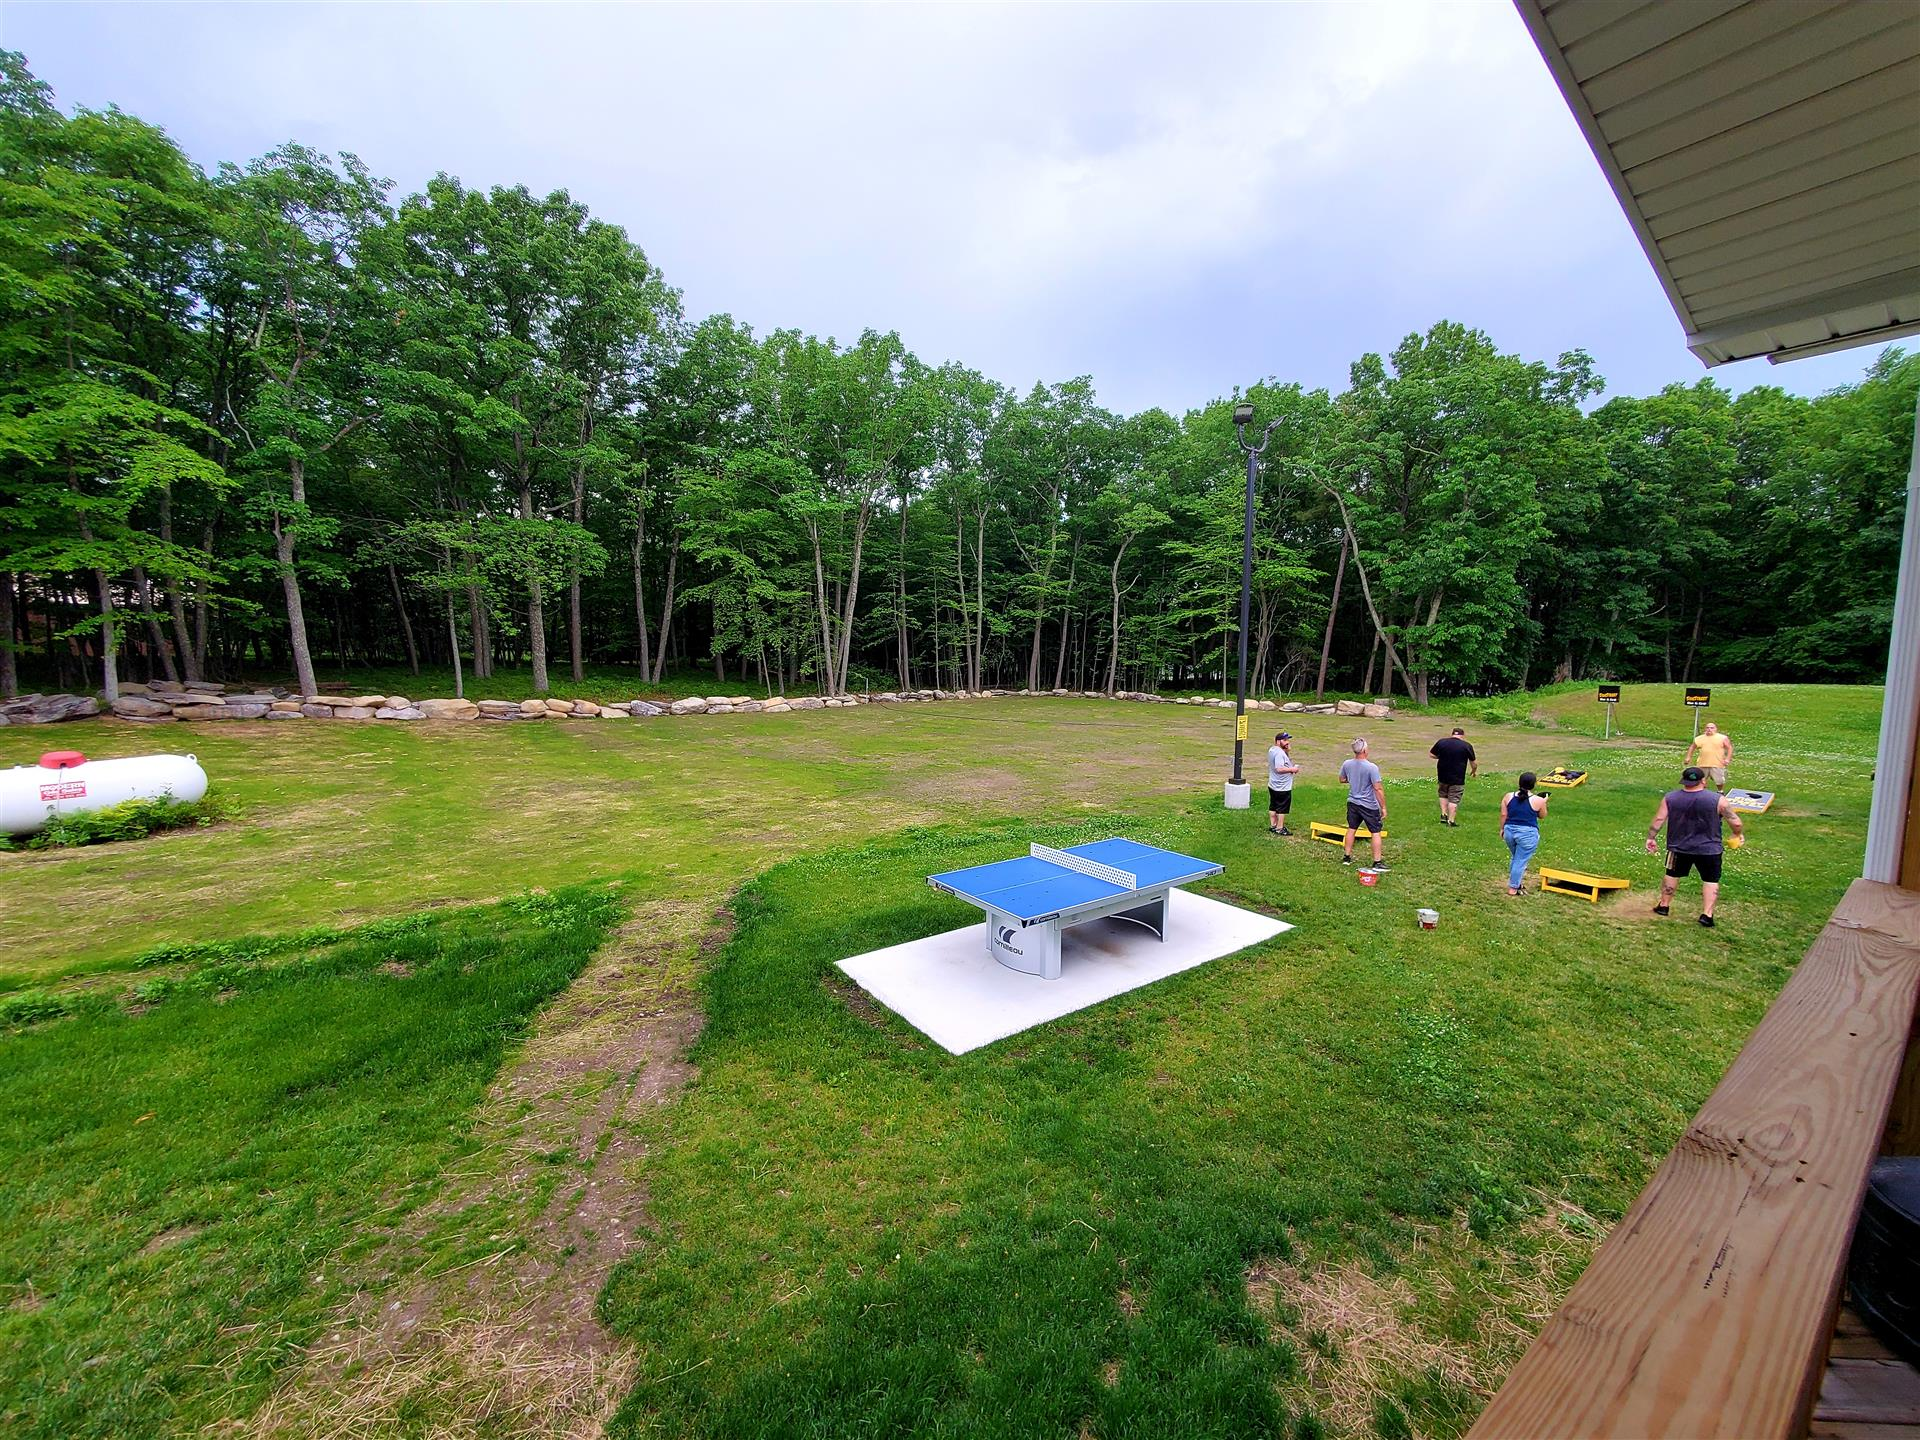 yard surrounded by trees with people playing cornhole